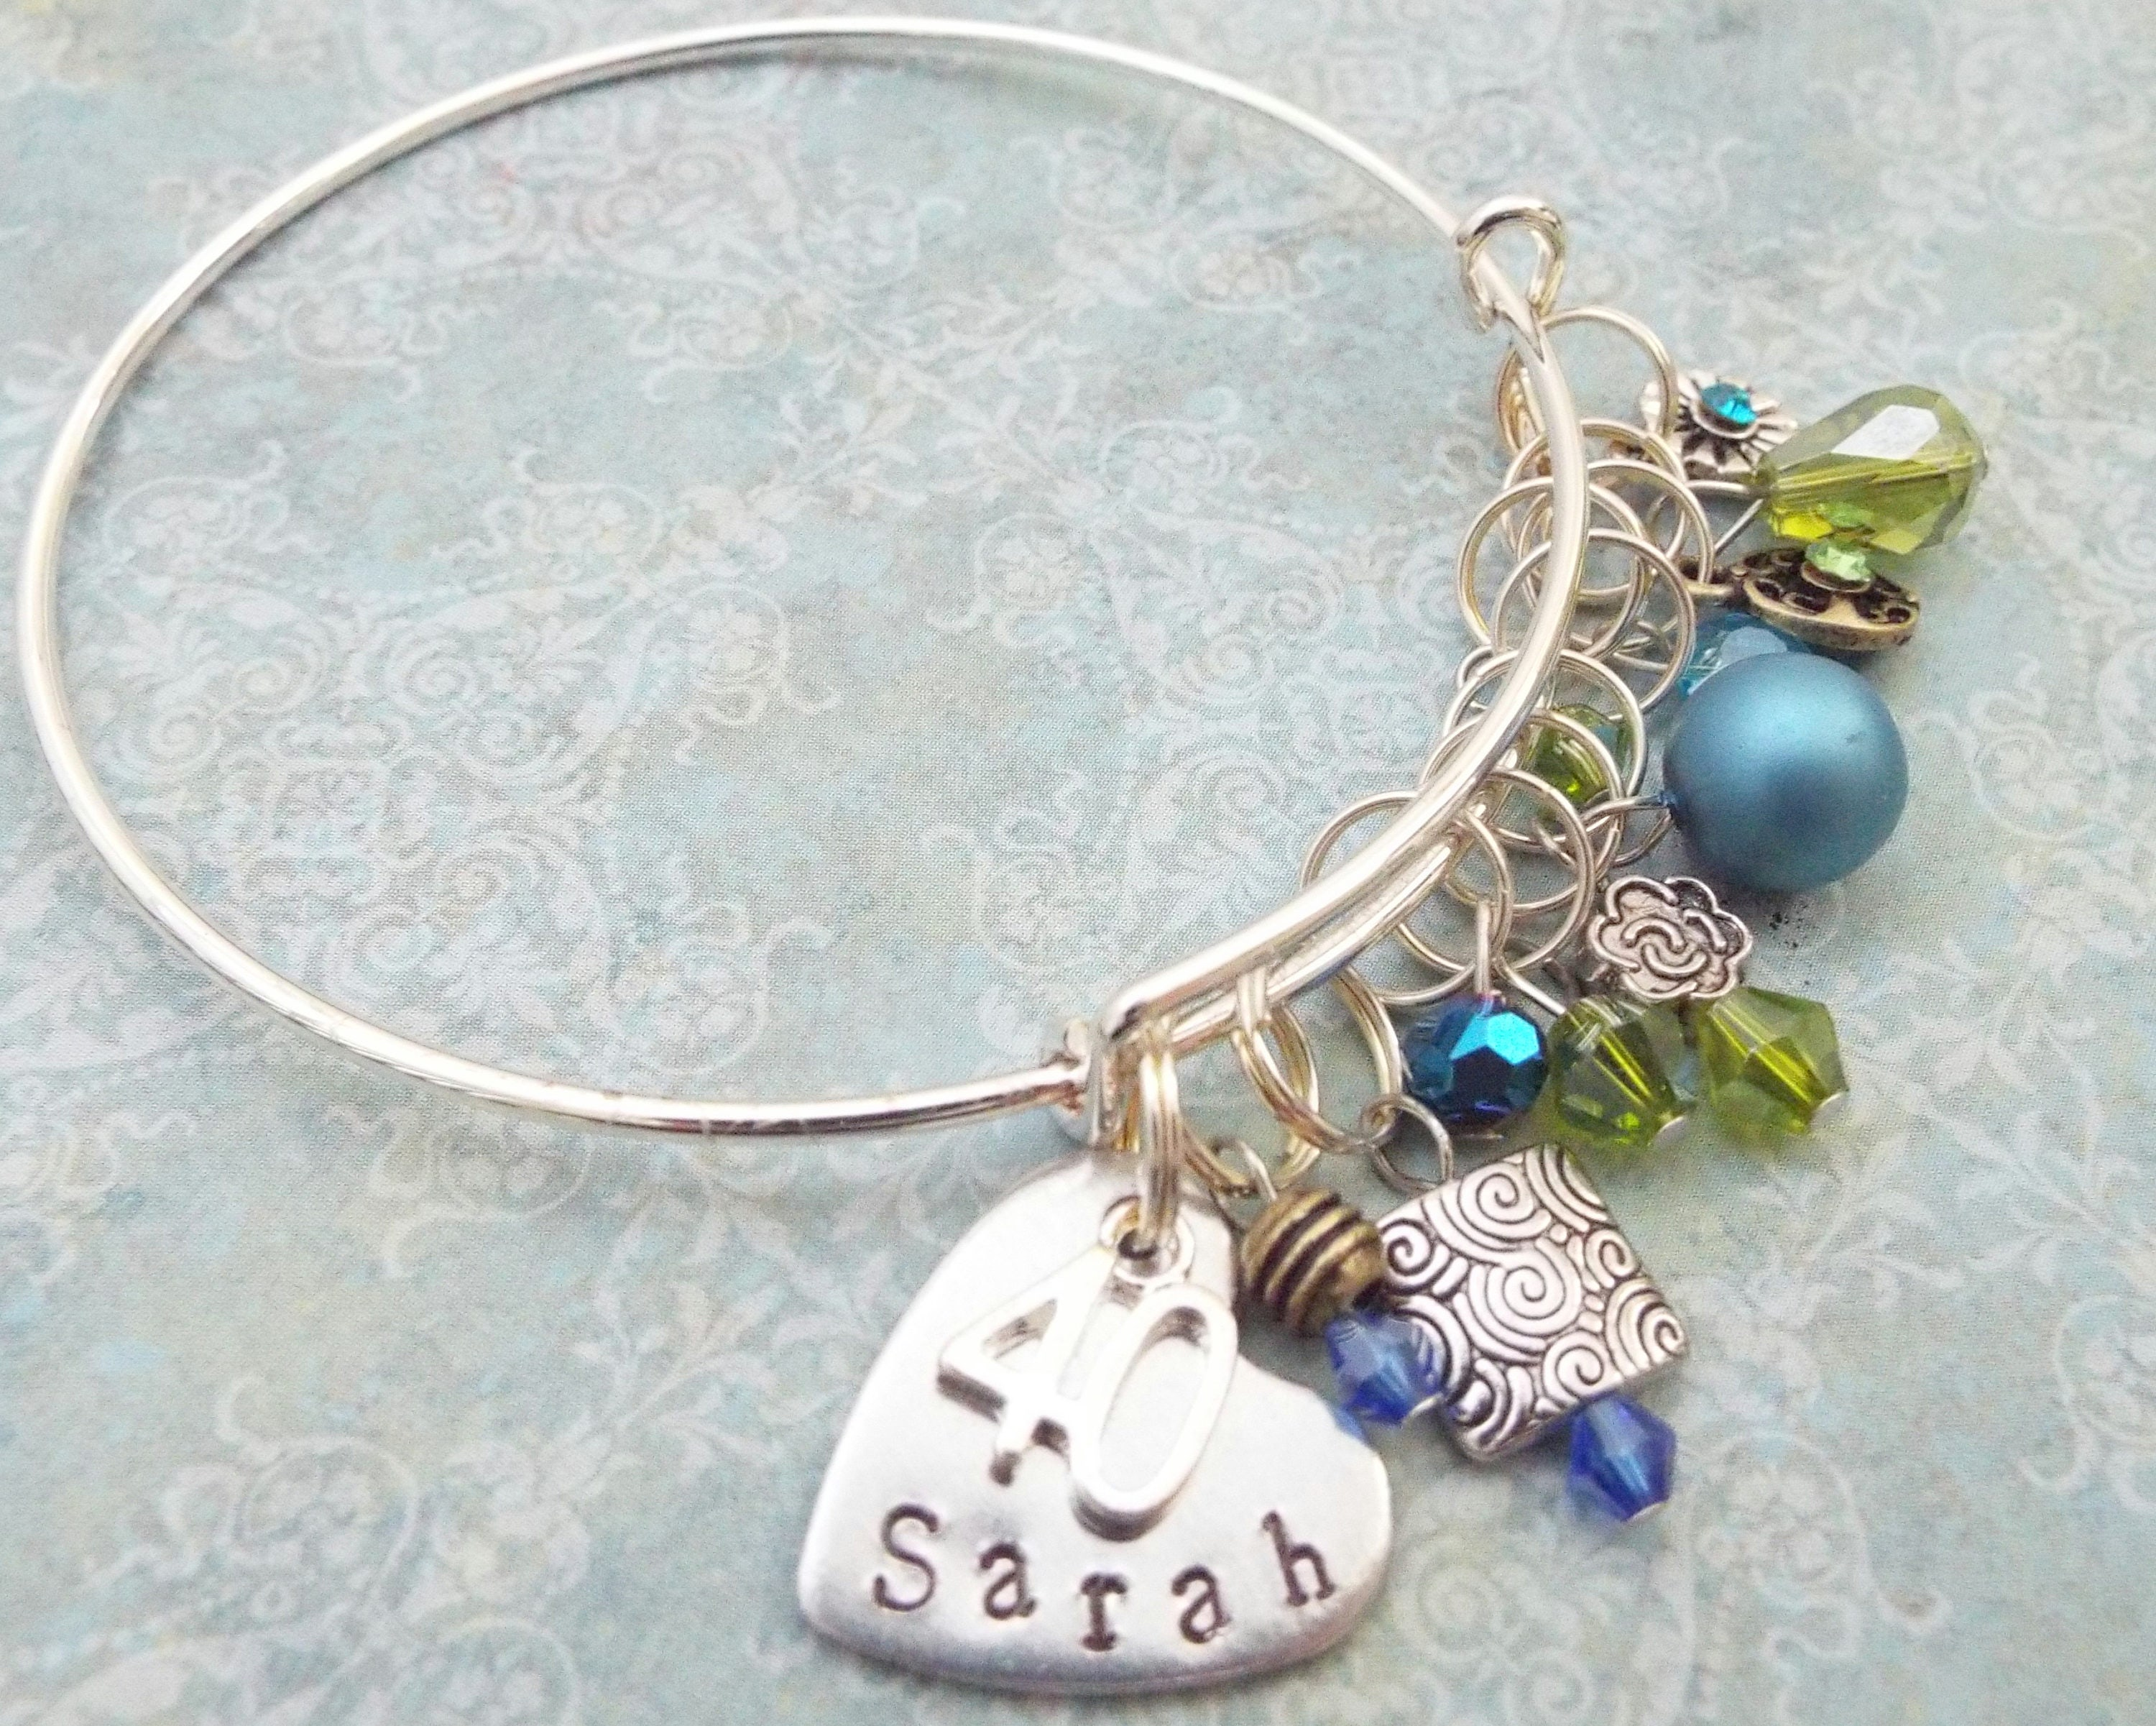 40th Birthday Gift Charm Bracelet Handstamped Personalized For Best Friend